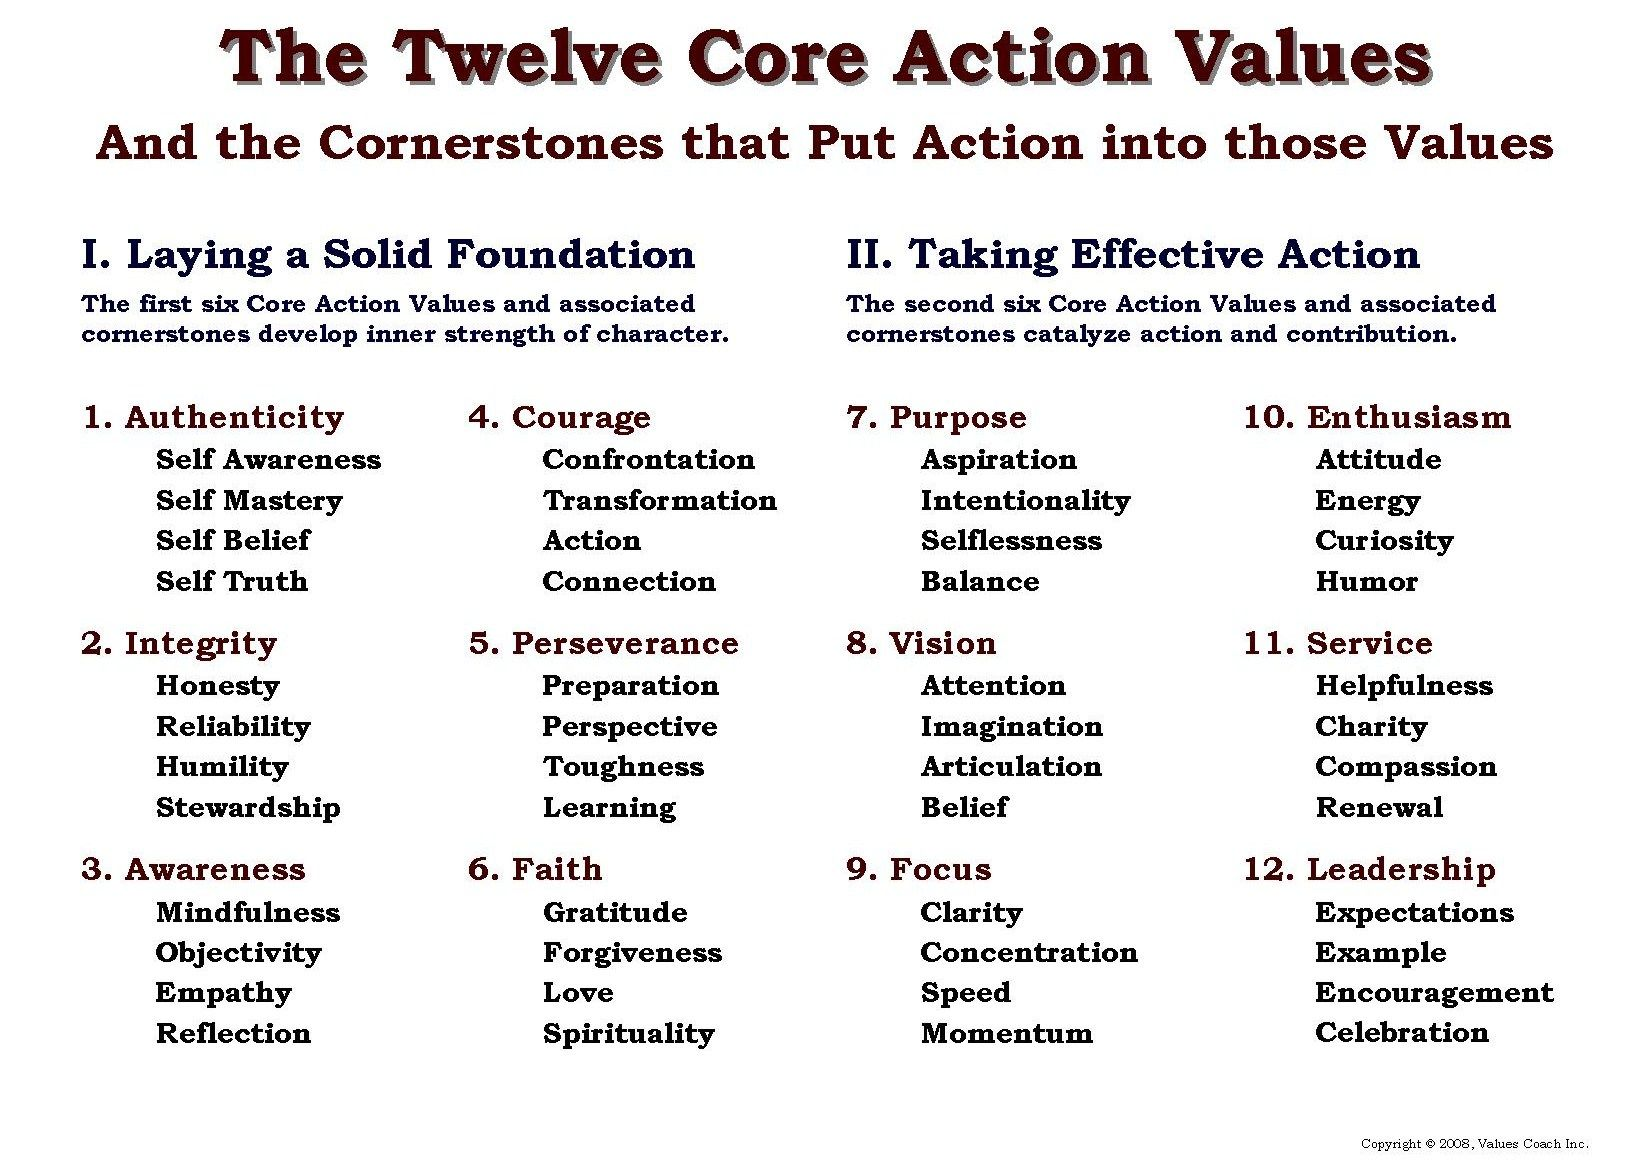 Outline Of The Values Coach Inc Course On The Twelve Core